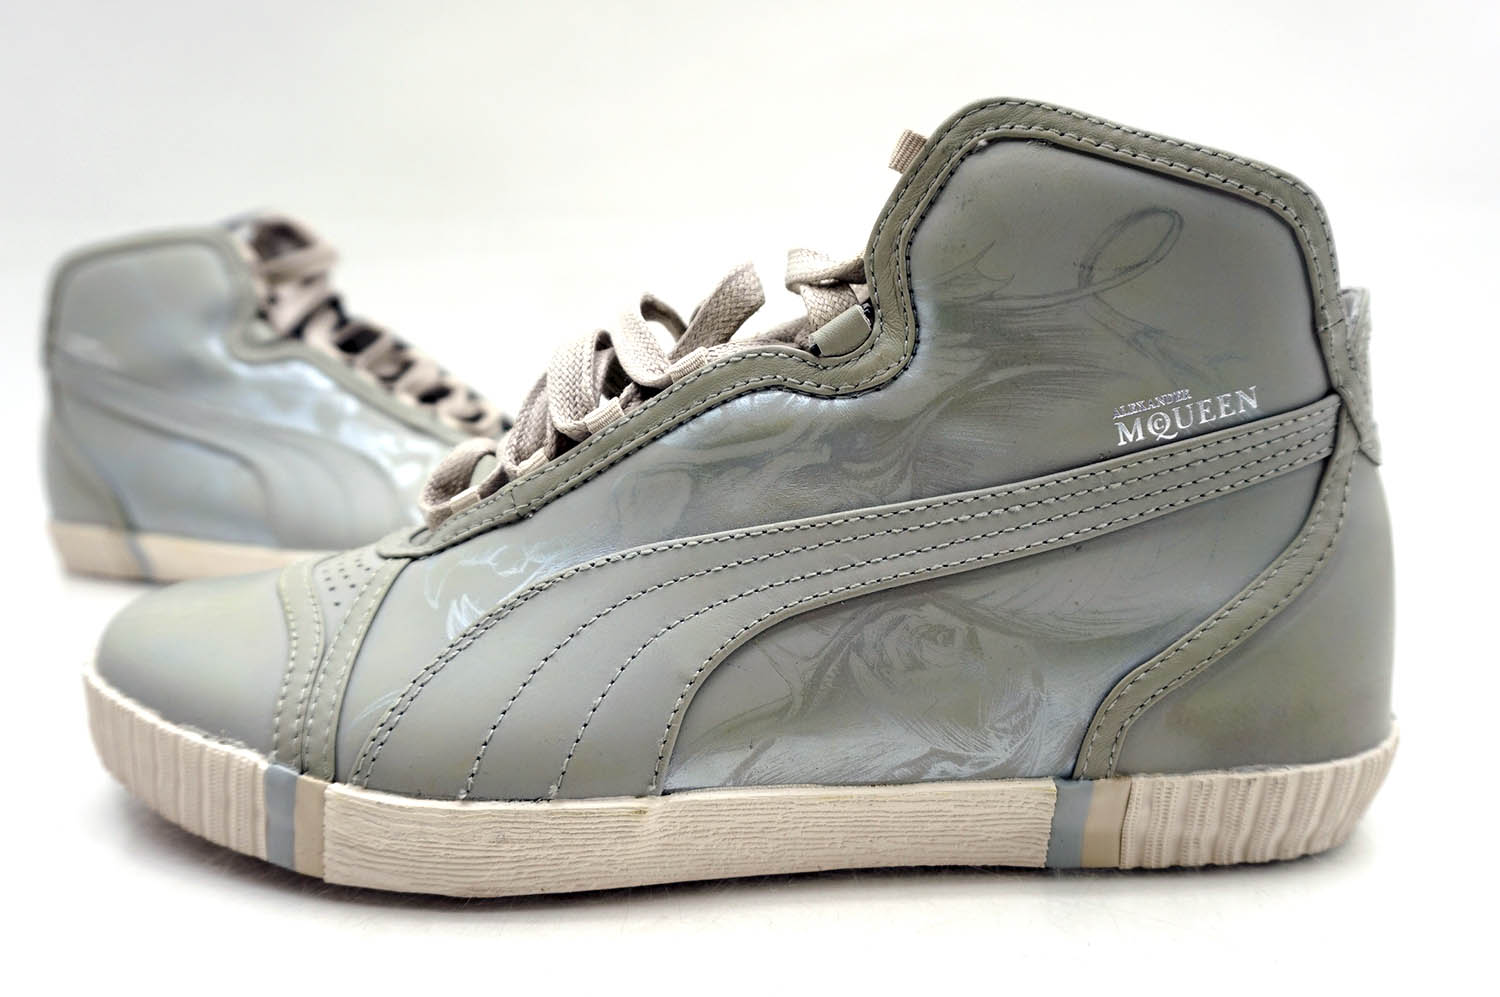 puma alexander mcqueen sneaker schuhe amq radiography old white silver gr 43 neu ebay. Black Bedroom Furniture Sets. Home Design Ideas